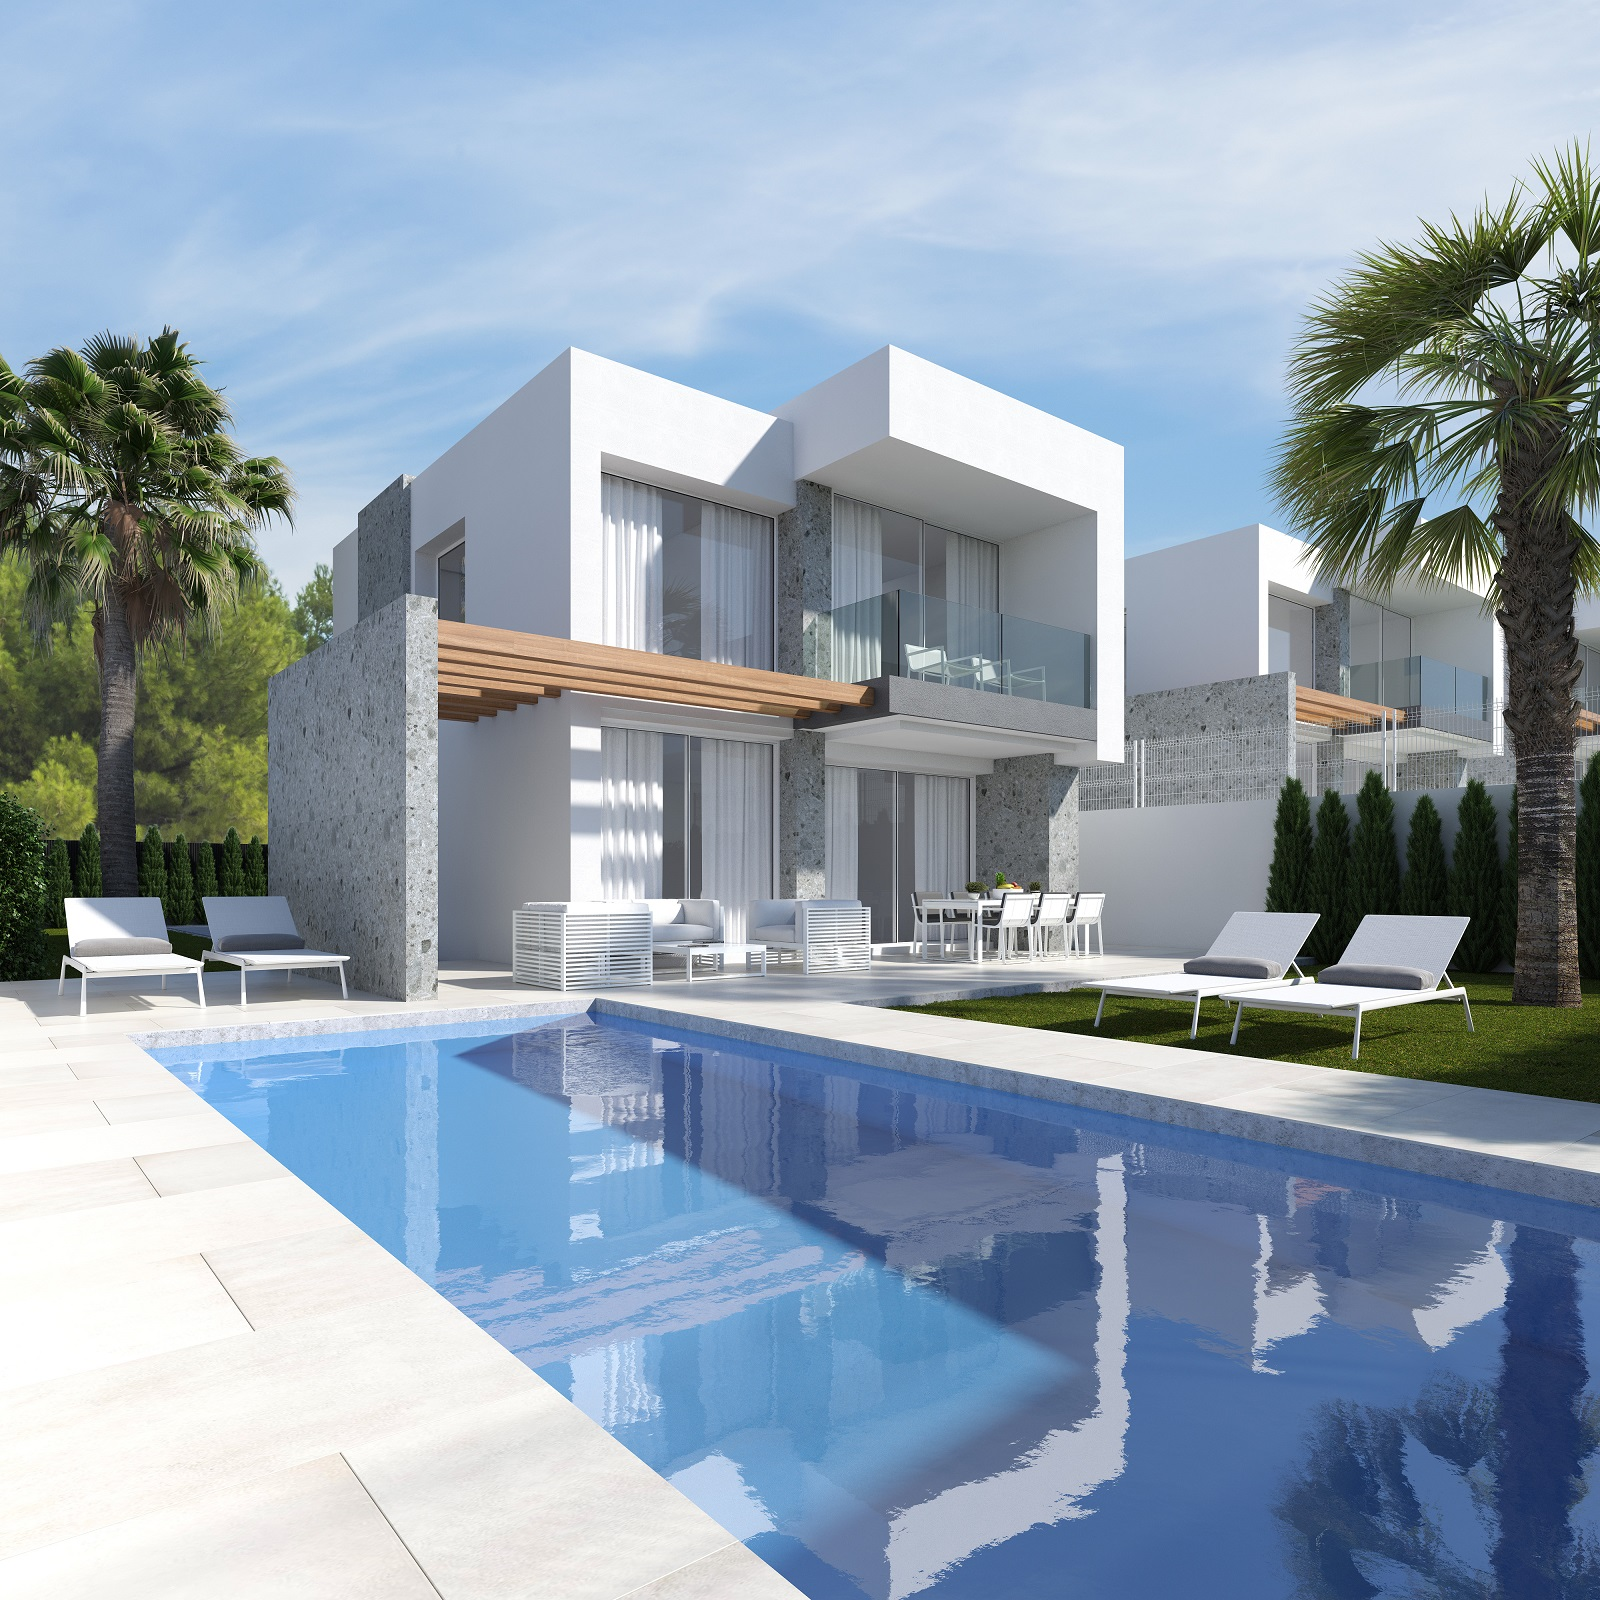 New Project: Elegant Detached Villas Surrounded by the Nature in Finestrat, Benidorm